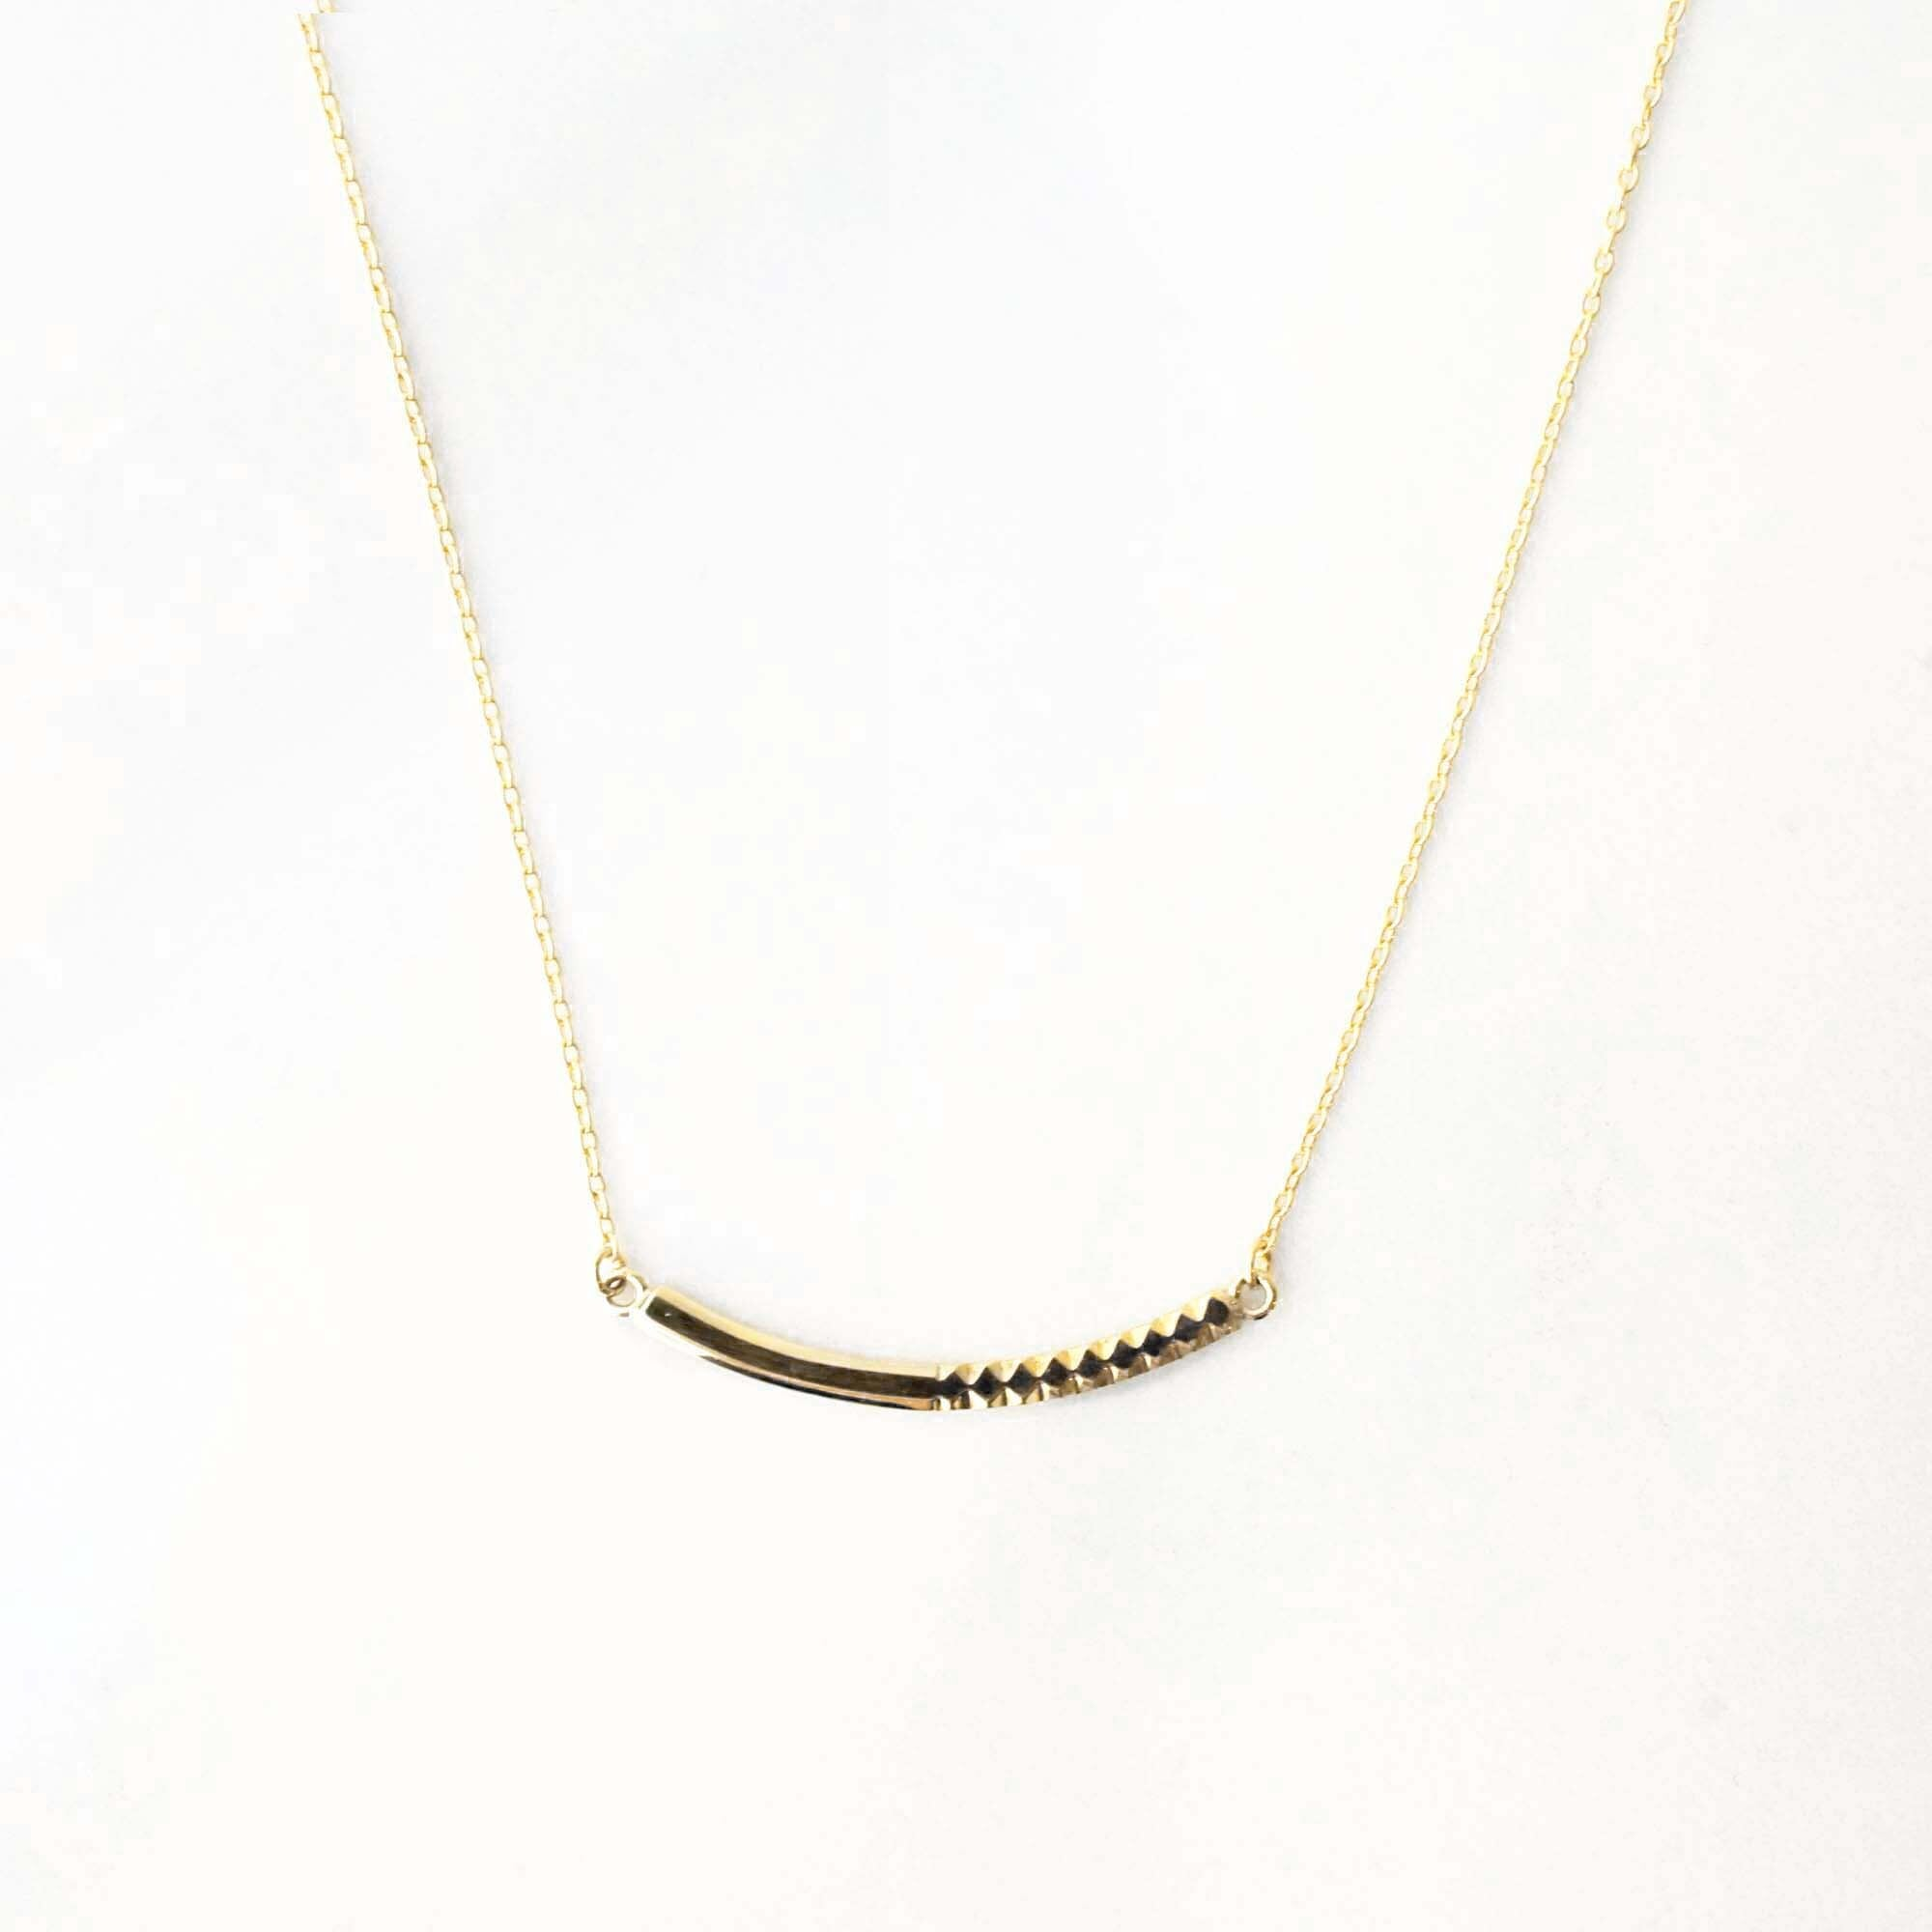 Rock Gold Necklace / S(N184-YG)